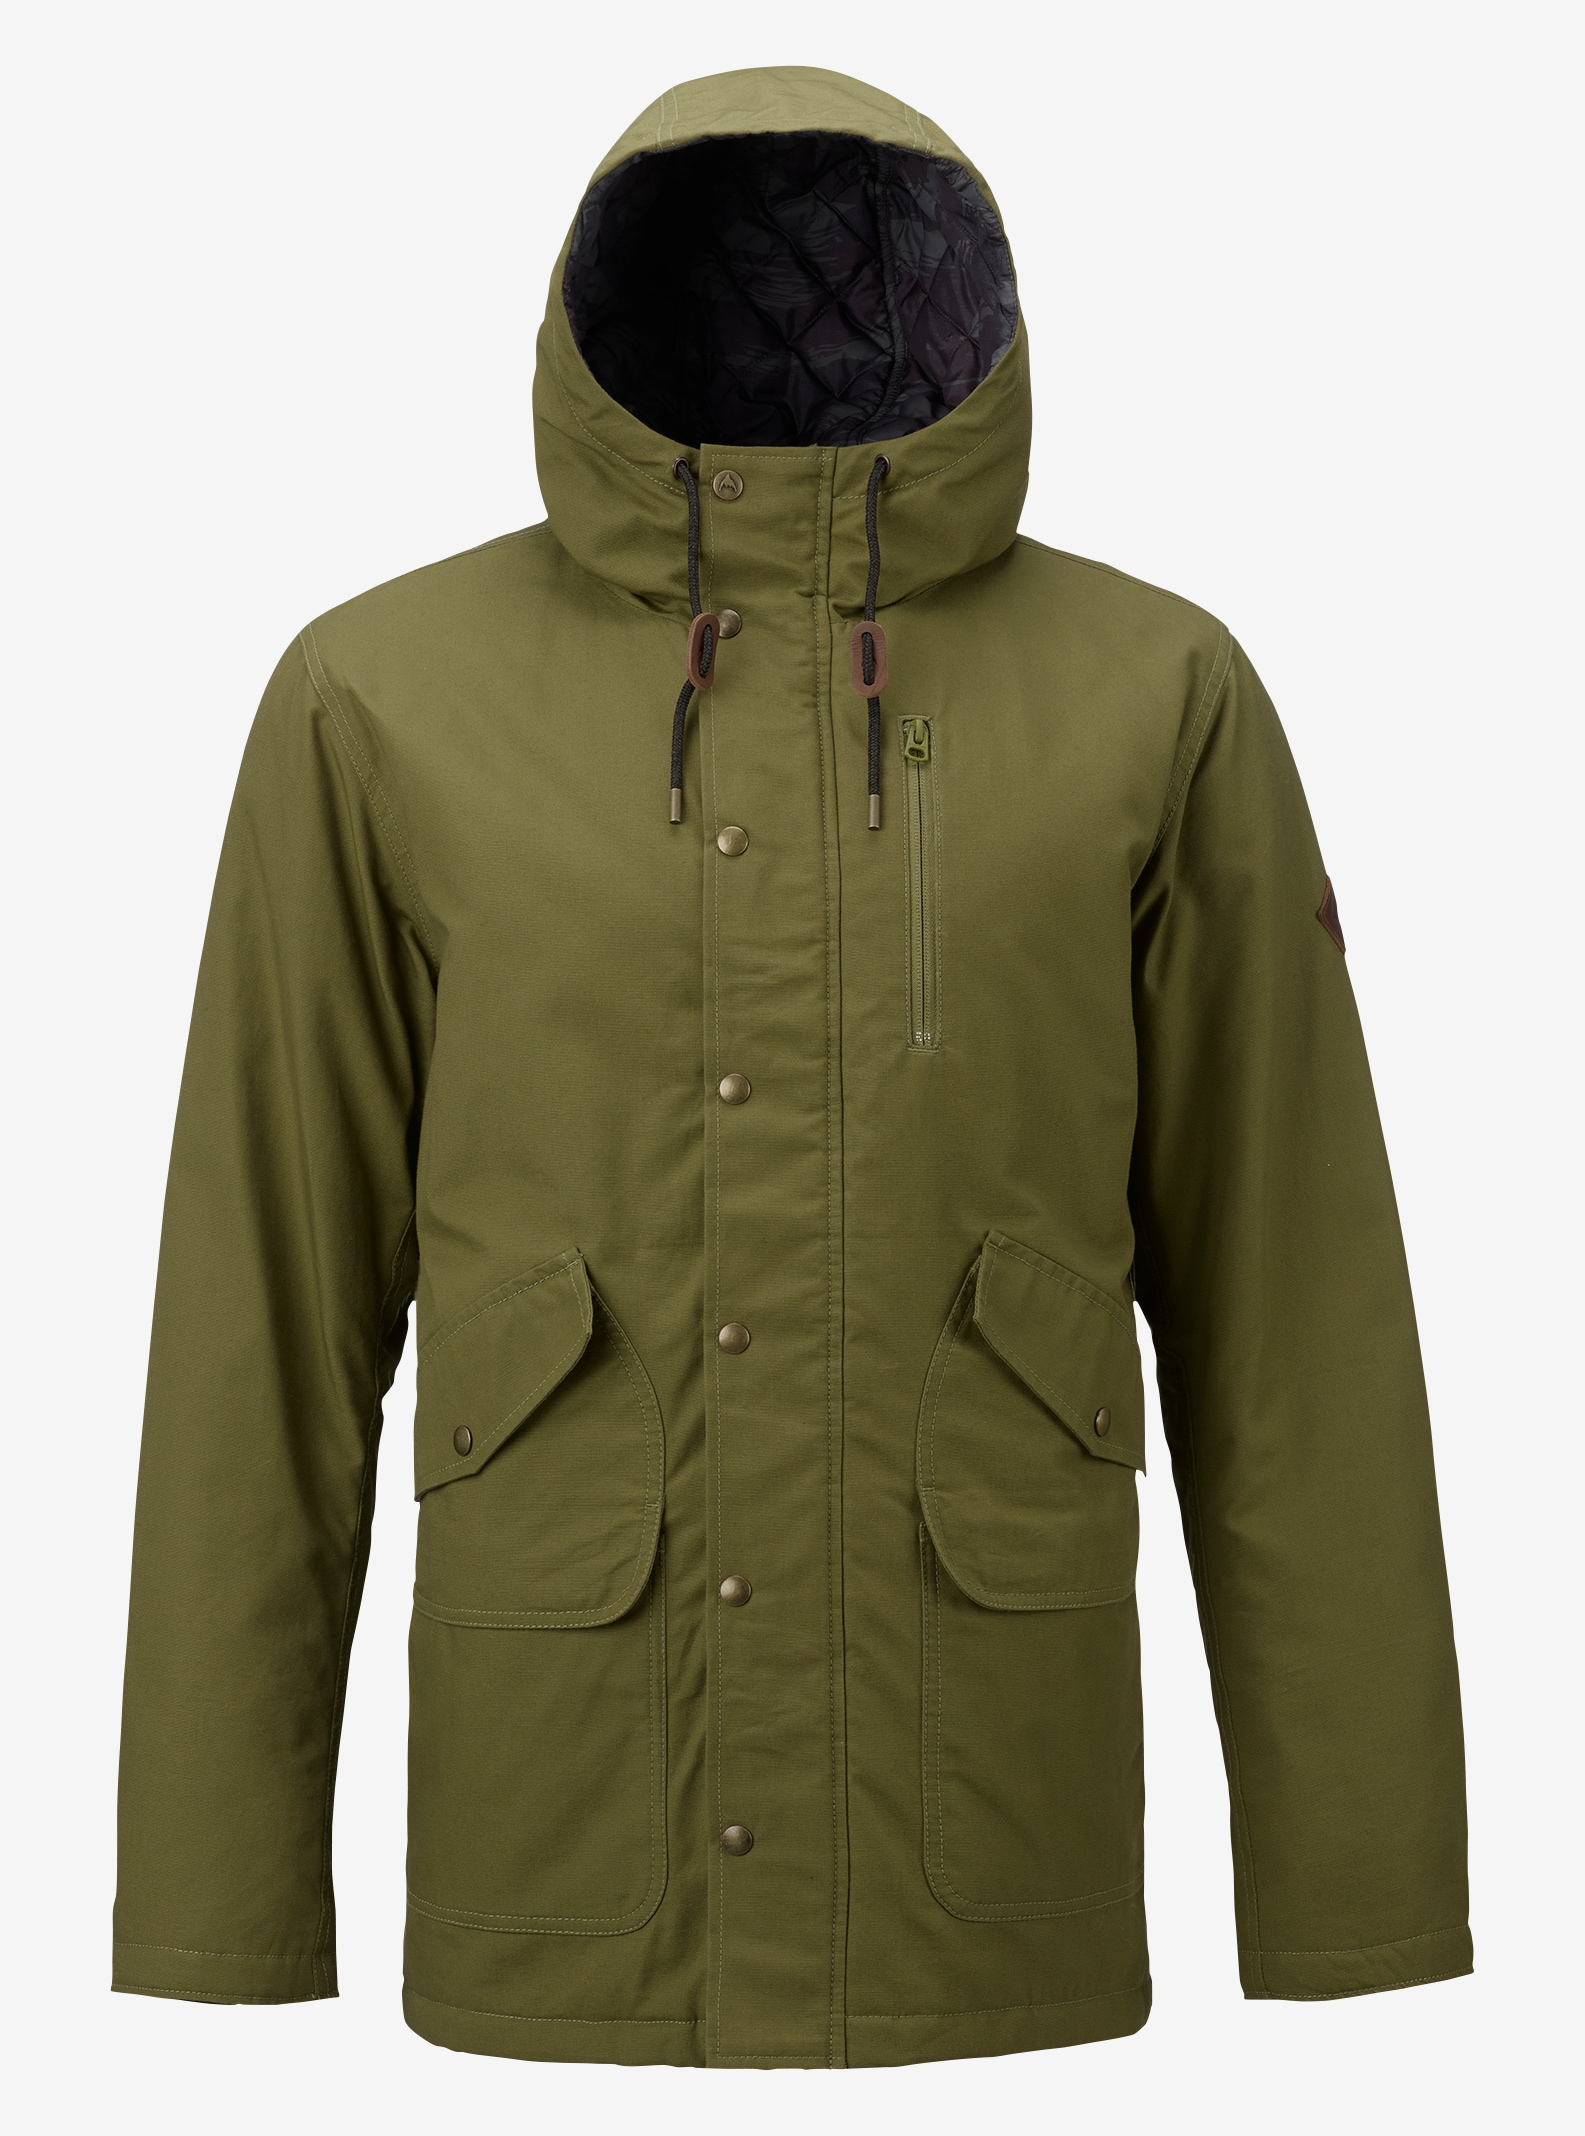 Men's Burton Sherman Jacket shown in Olive Branch